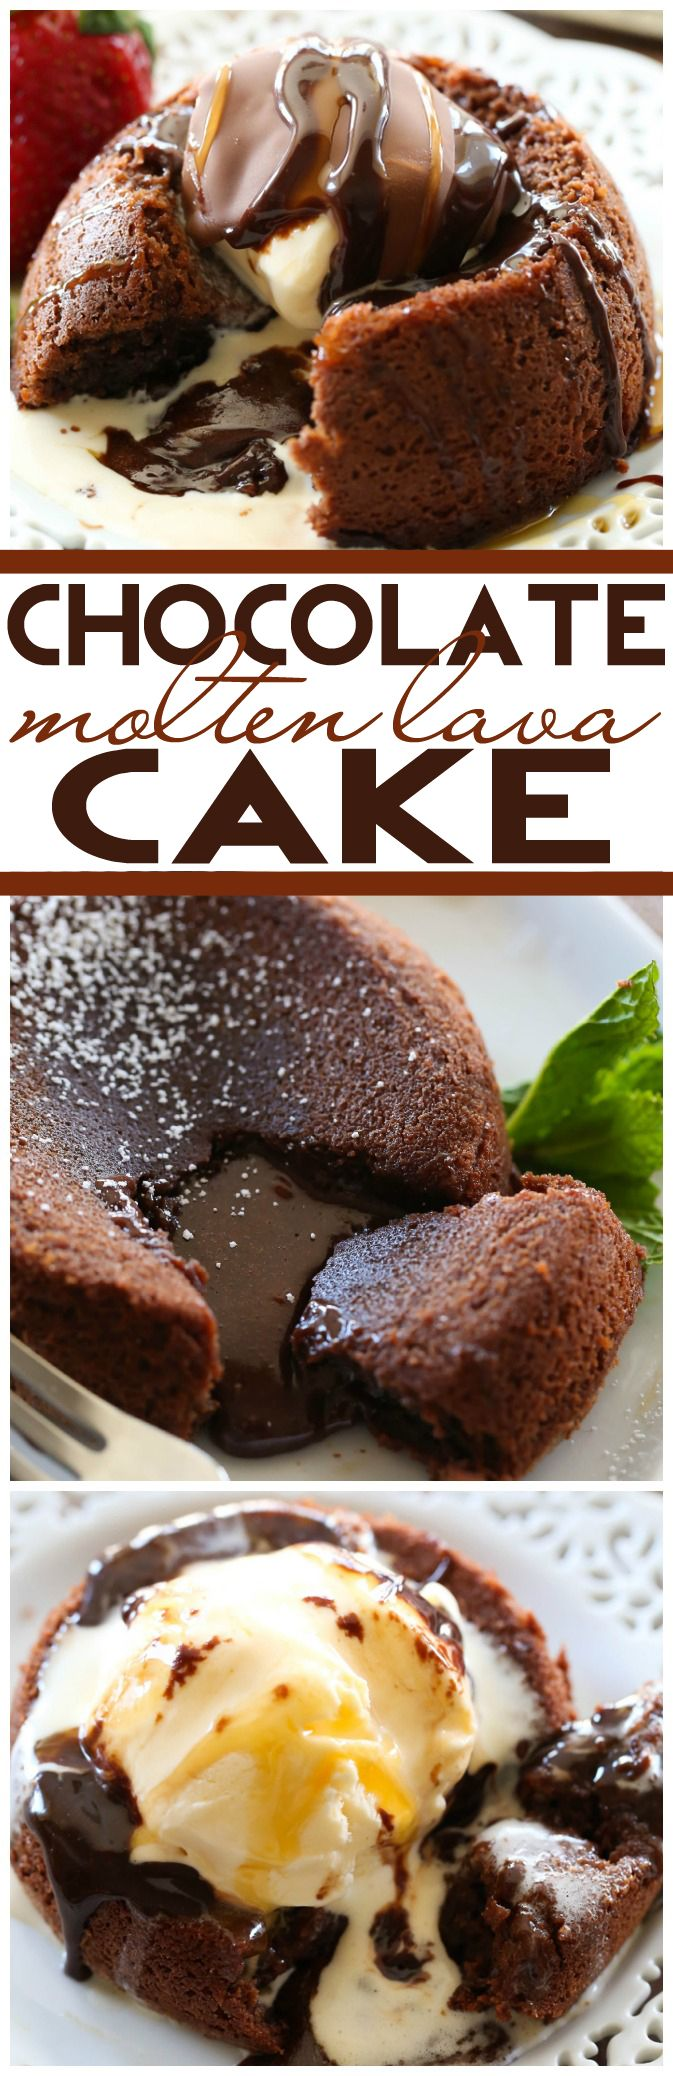 Chocolate Molten Lava Cake... This dessert is beyond amazing! It is filled with rich, creamy, velvety chocolate in every bite! It is one unforgettable cake!